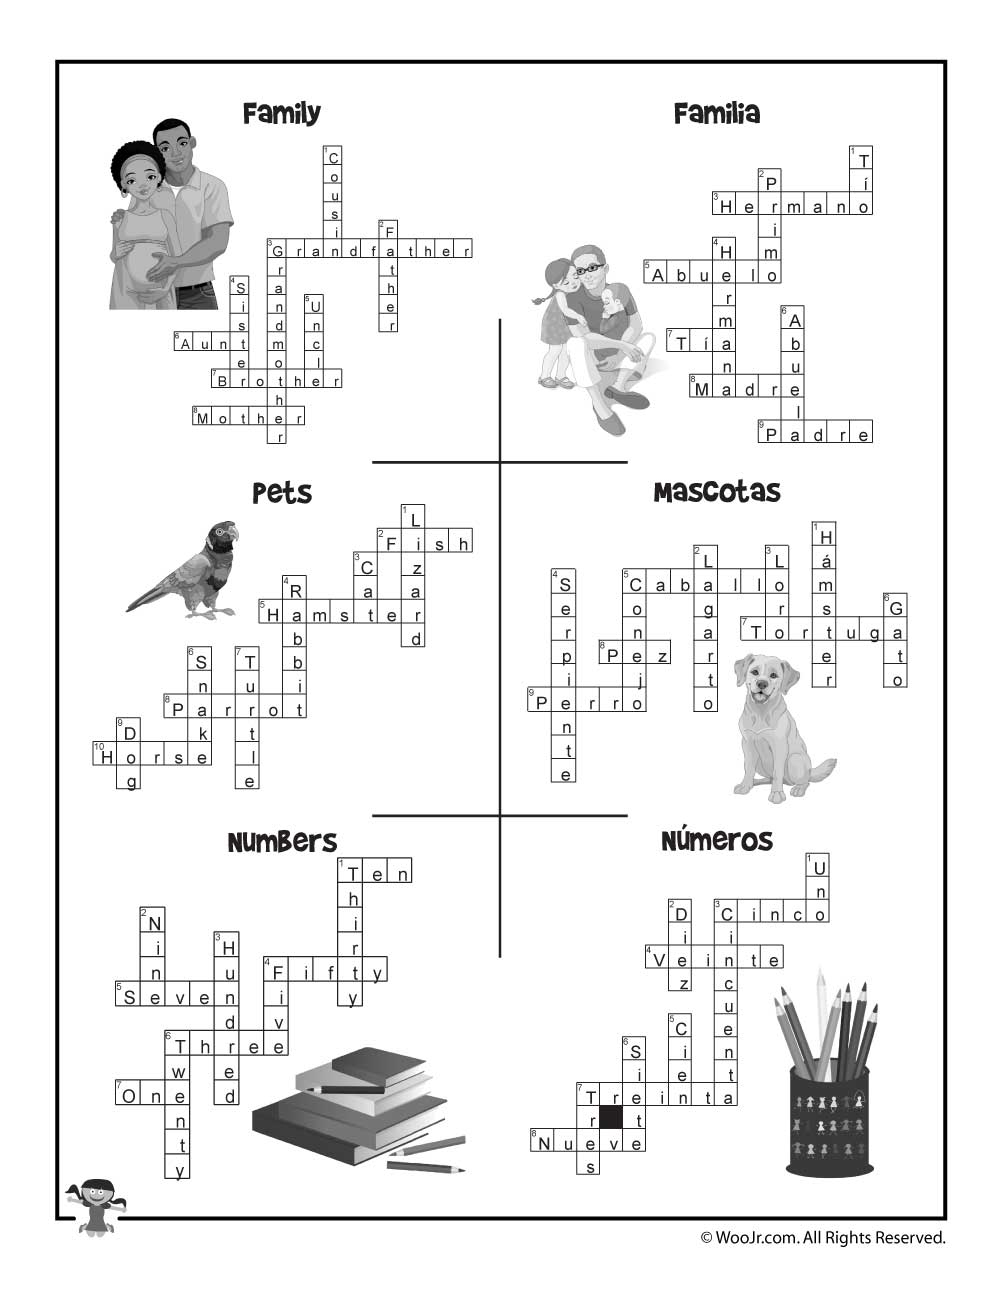 Esl Worksheet Crossword Puzzle Answers | Woo! Jr. Kids Activities - Printable English Crossword Puzzles With Answers